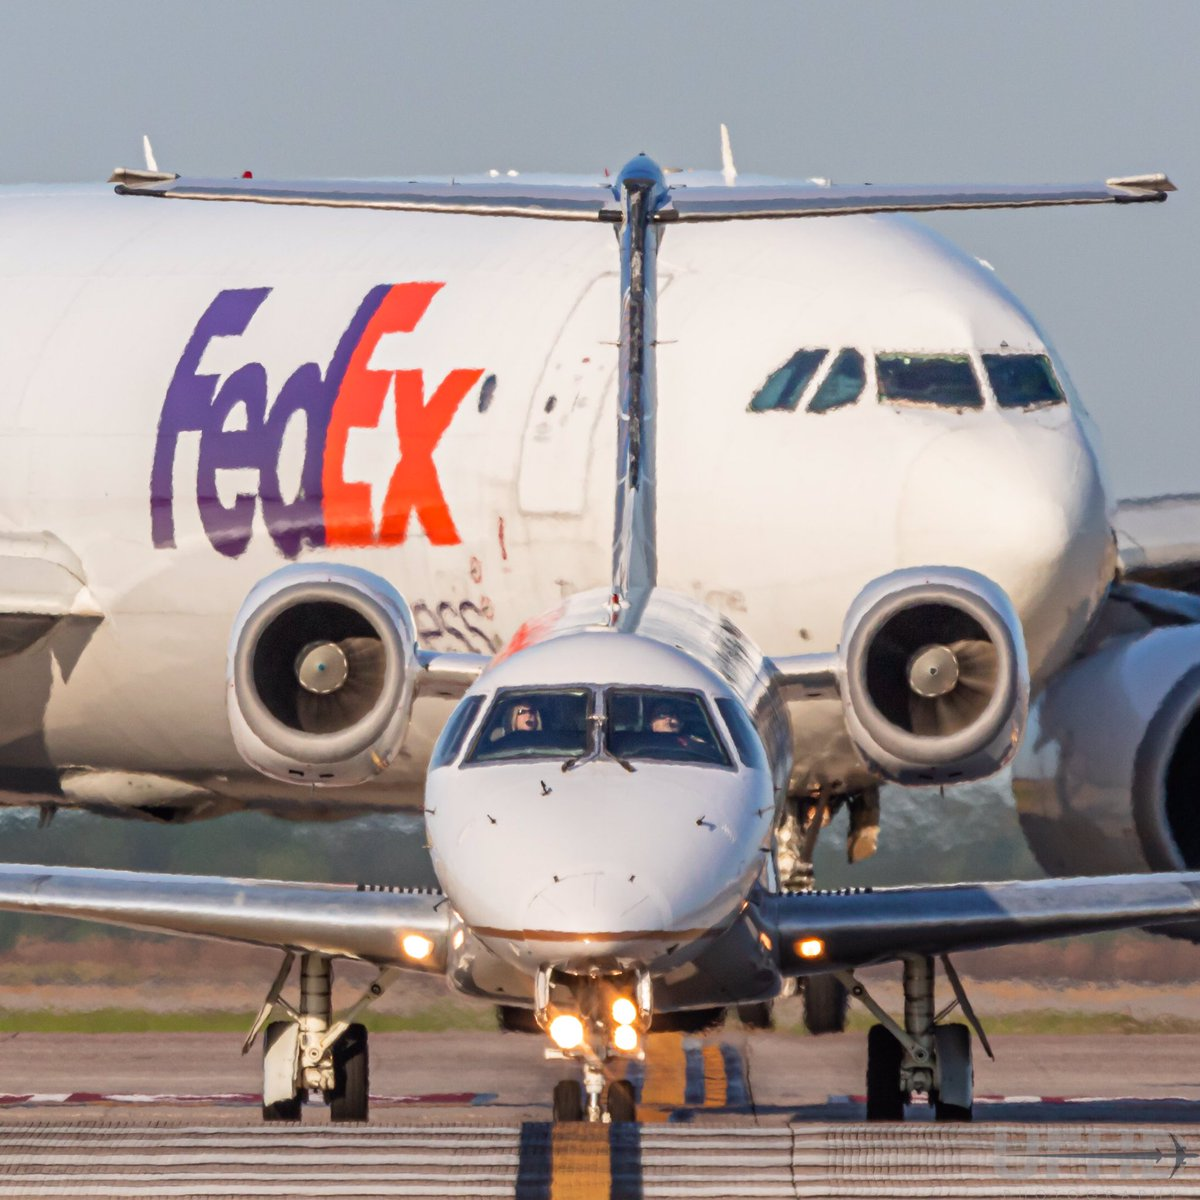 FedEx A300F creeping up behind a United Express ERJ as it taxis to depart Houston IAH  #avgeek #embraer #airbus #airbus300 #freighterfriday